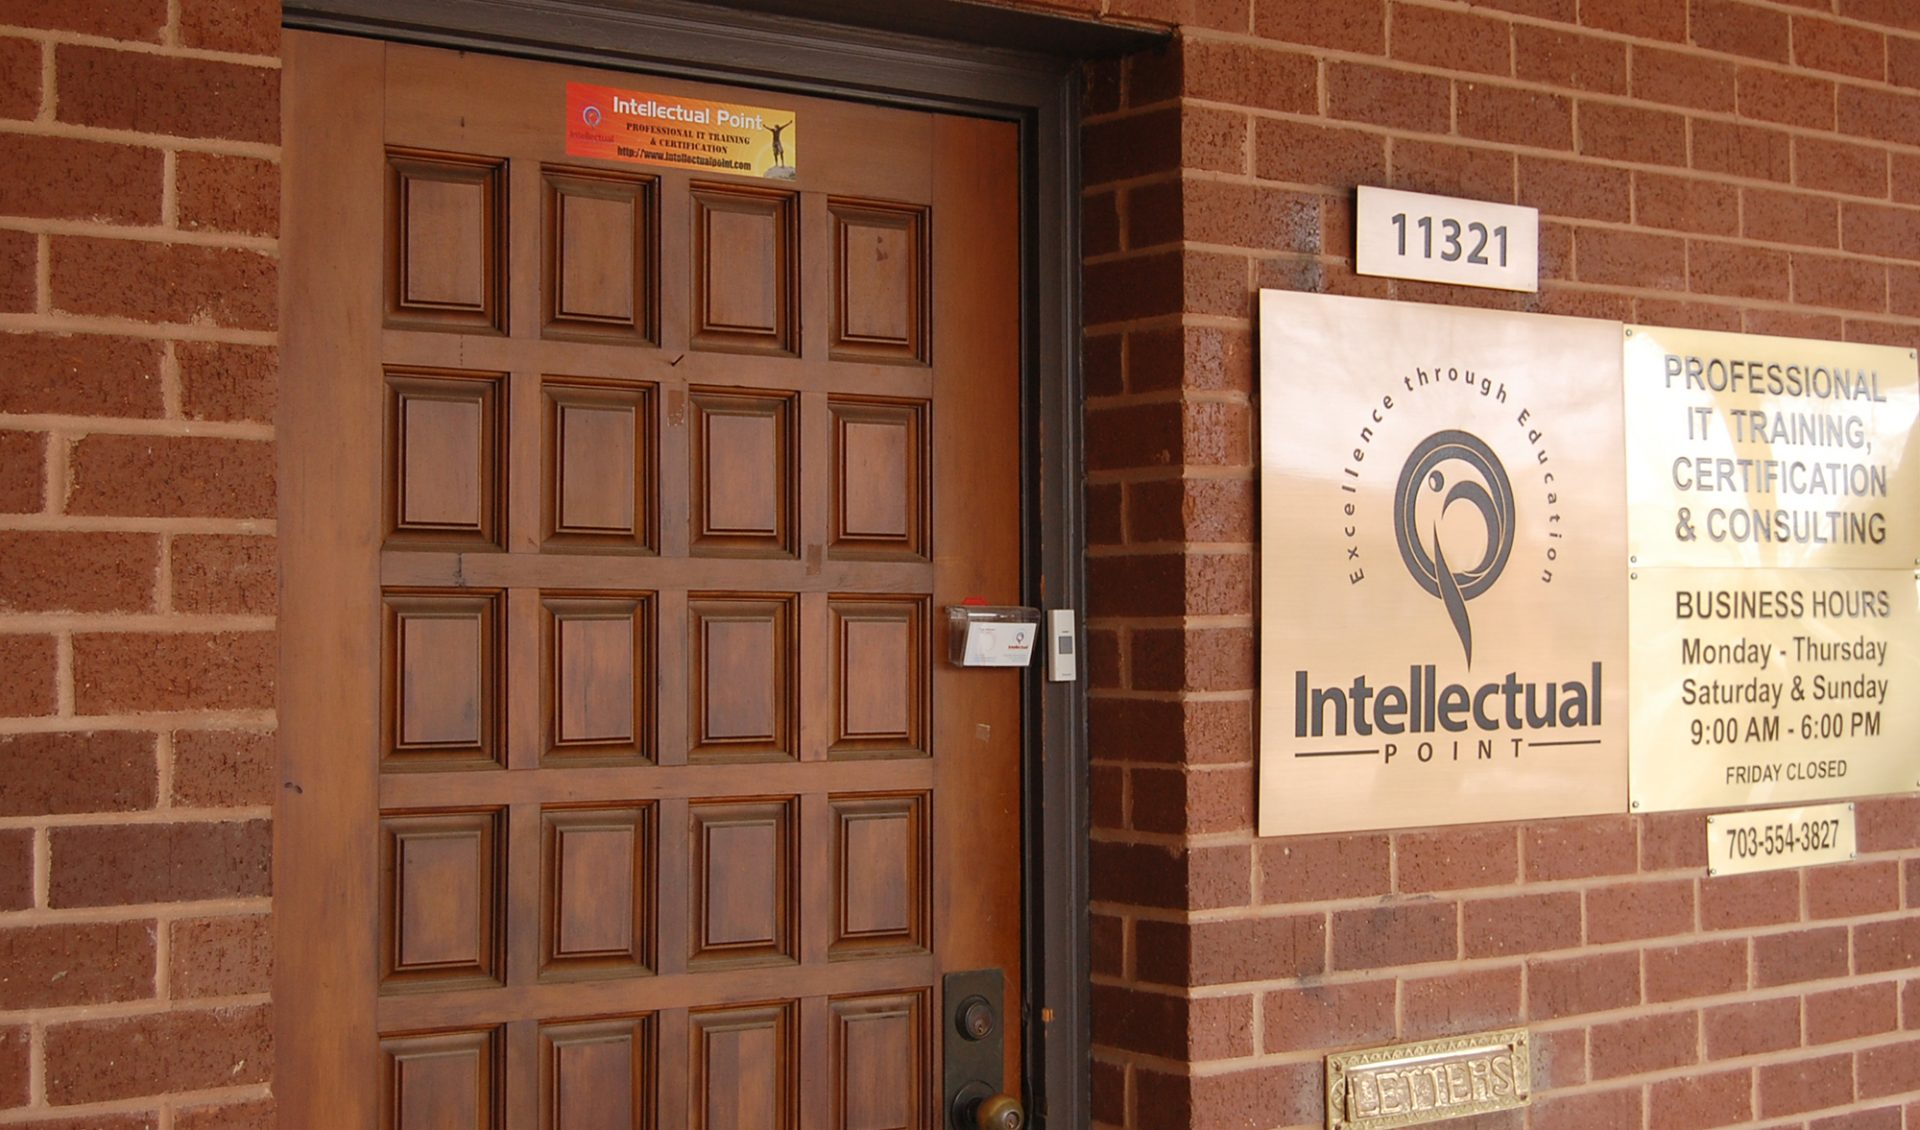 Front Door at Intellectual Point